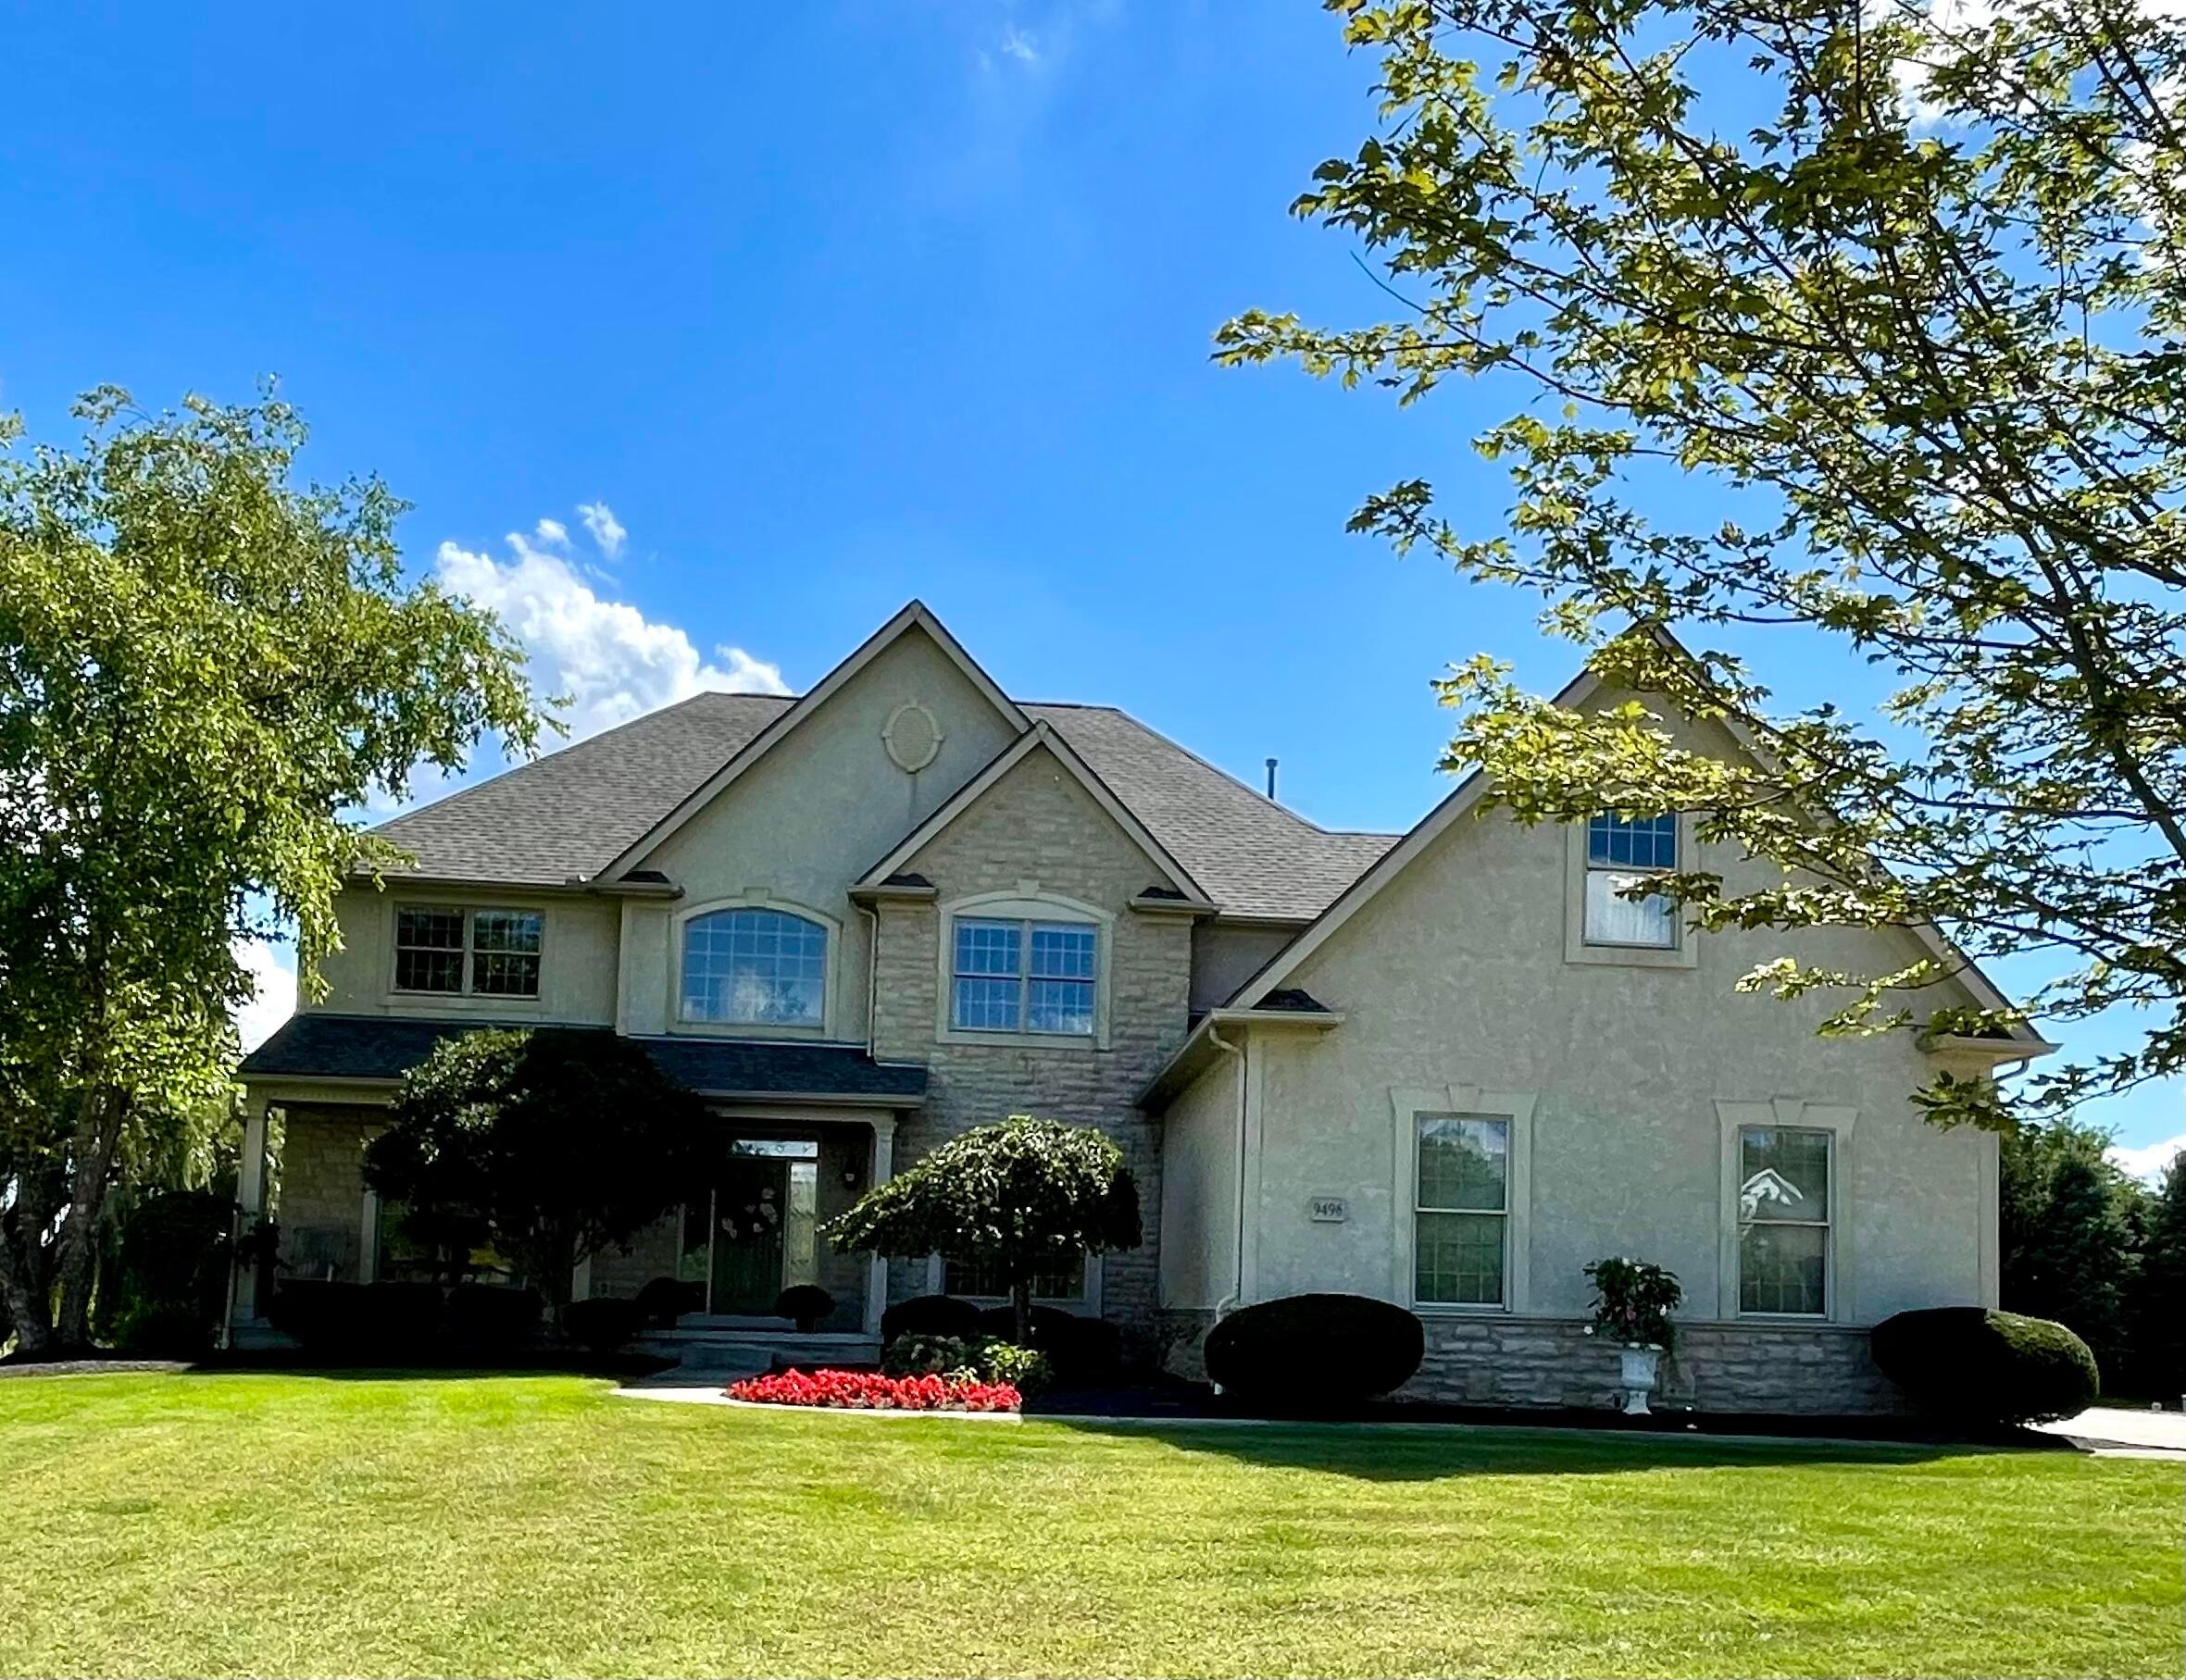 Photo of 9496 Emerson Drive, Powell, OH 43065